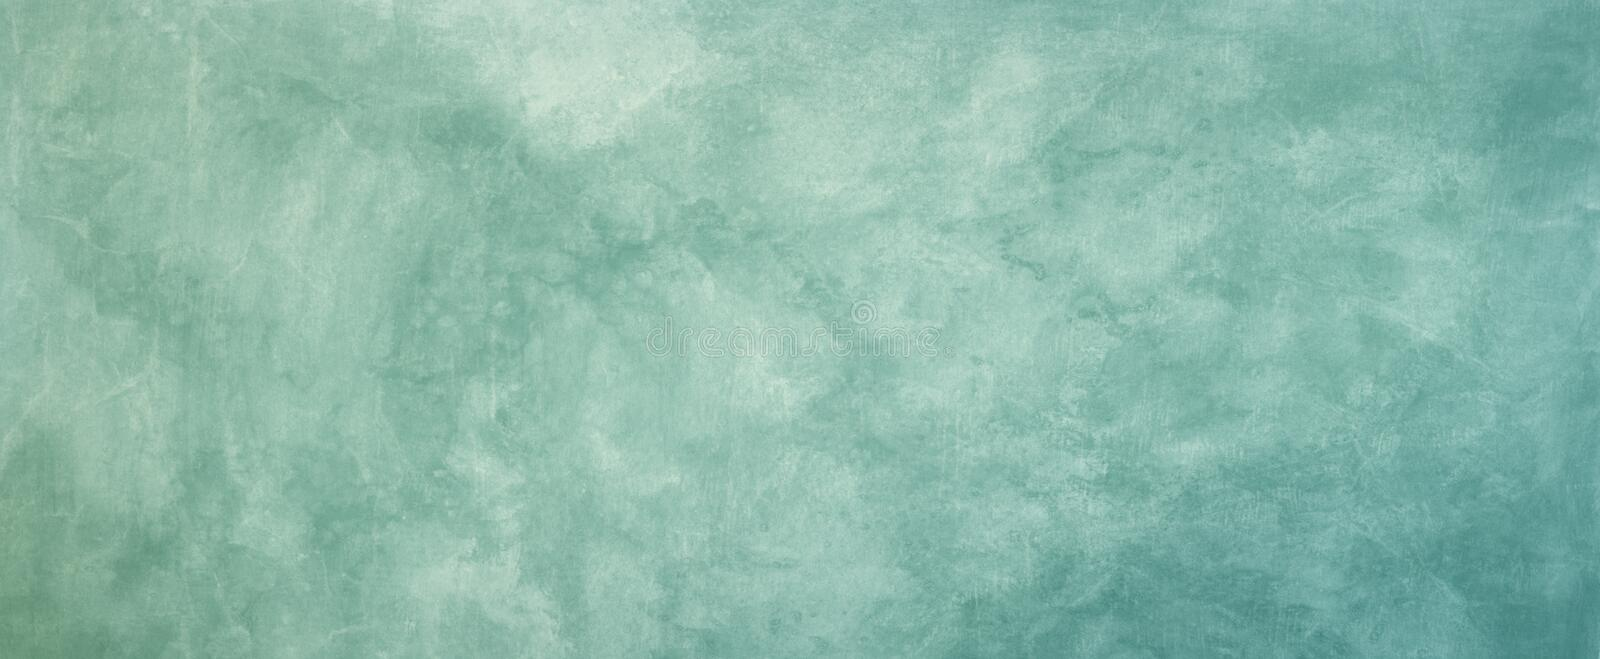 Vintage background texture. Old blue green marbled grunge textured design with faded distressed pattern. In pastel antique backdrop royalty free stock image